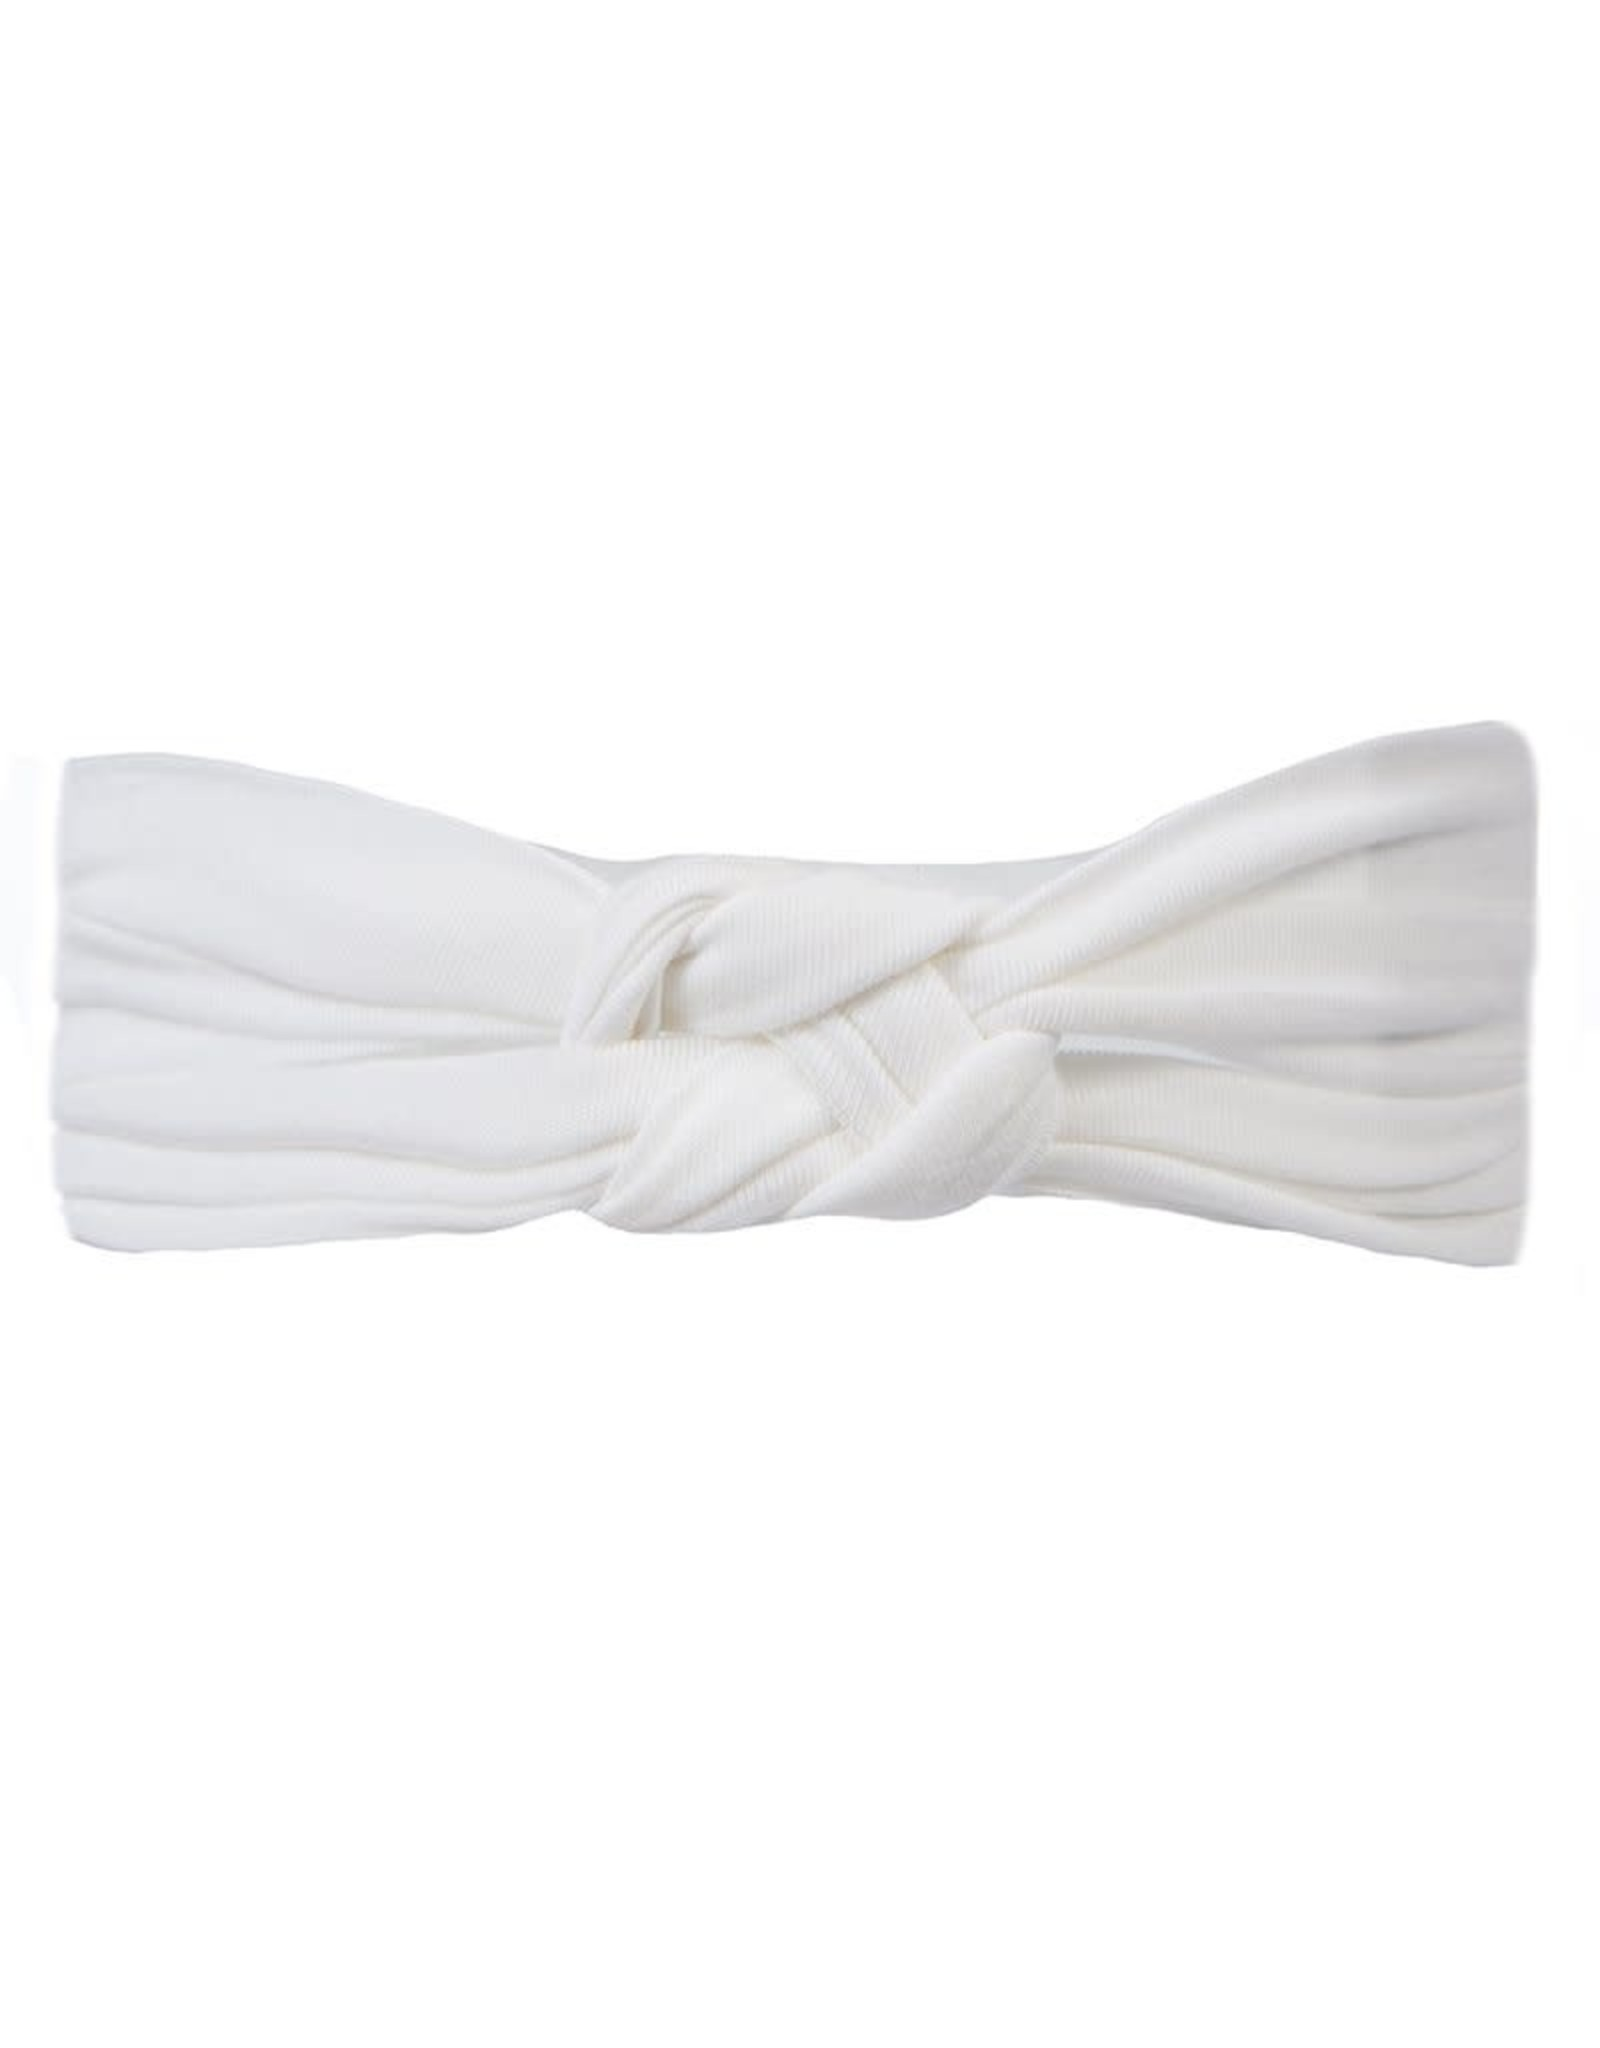 KicKee Pants Kickee Pants Knot Headband, Natural, One Size